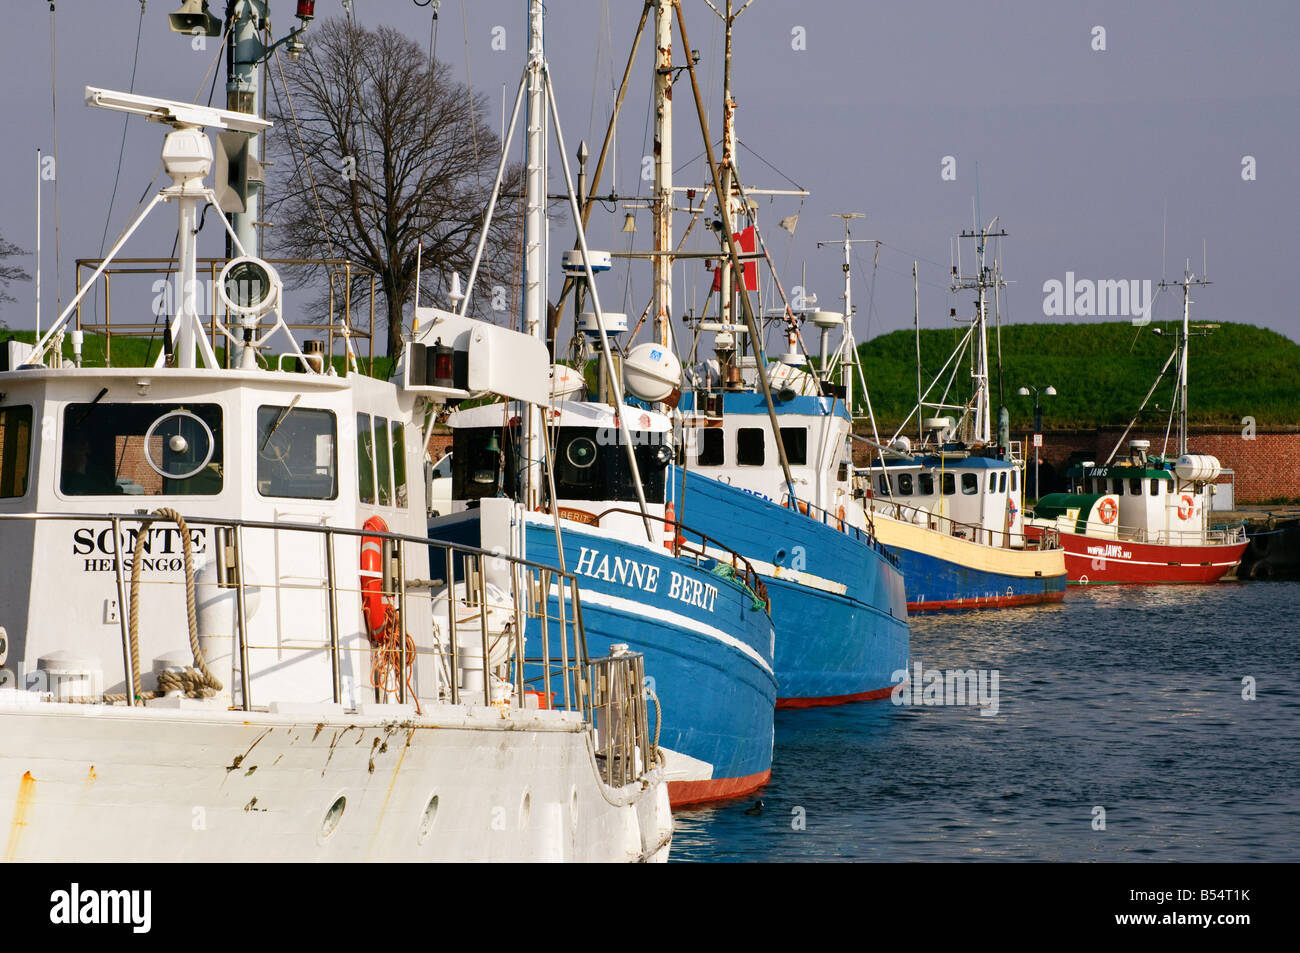 Fishing boats at Helsingør Denmark - Stock Image